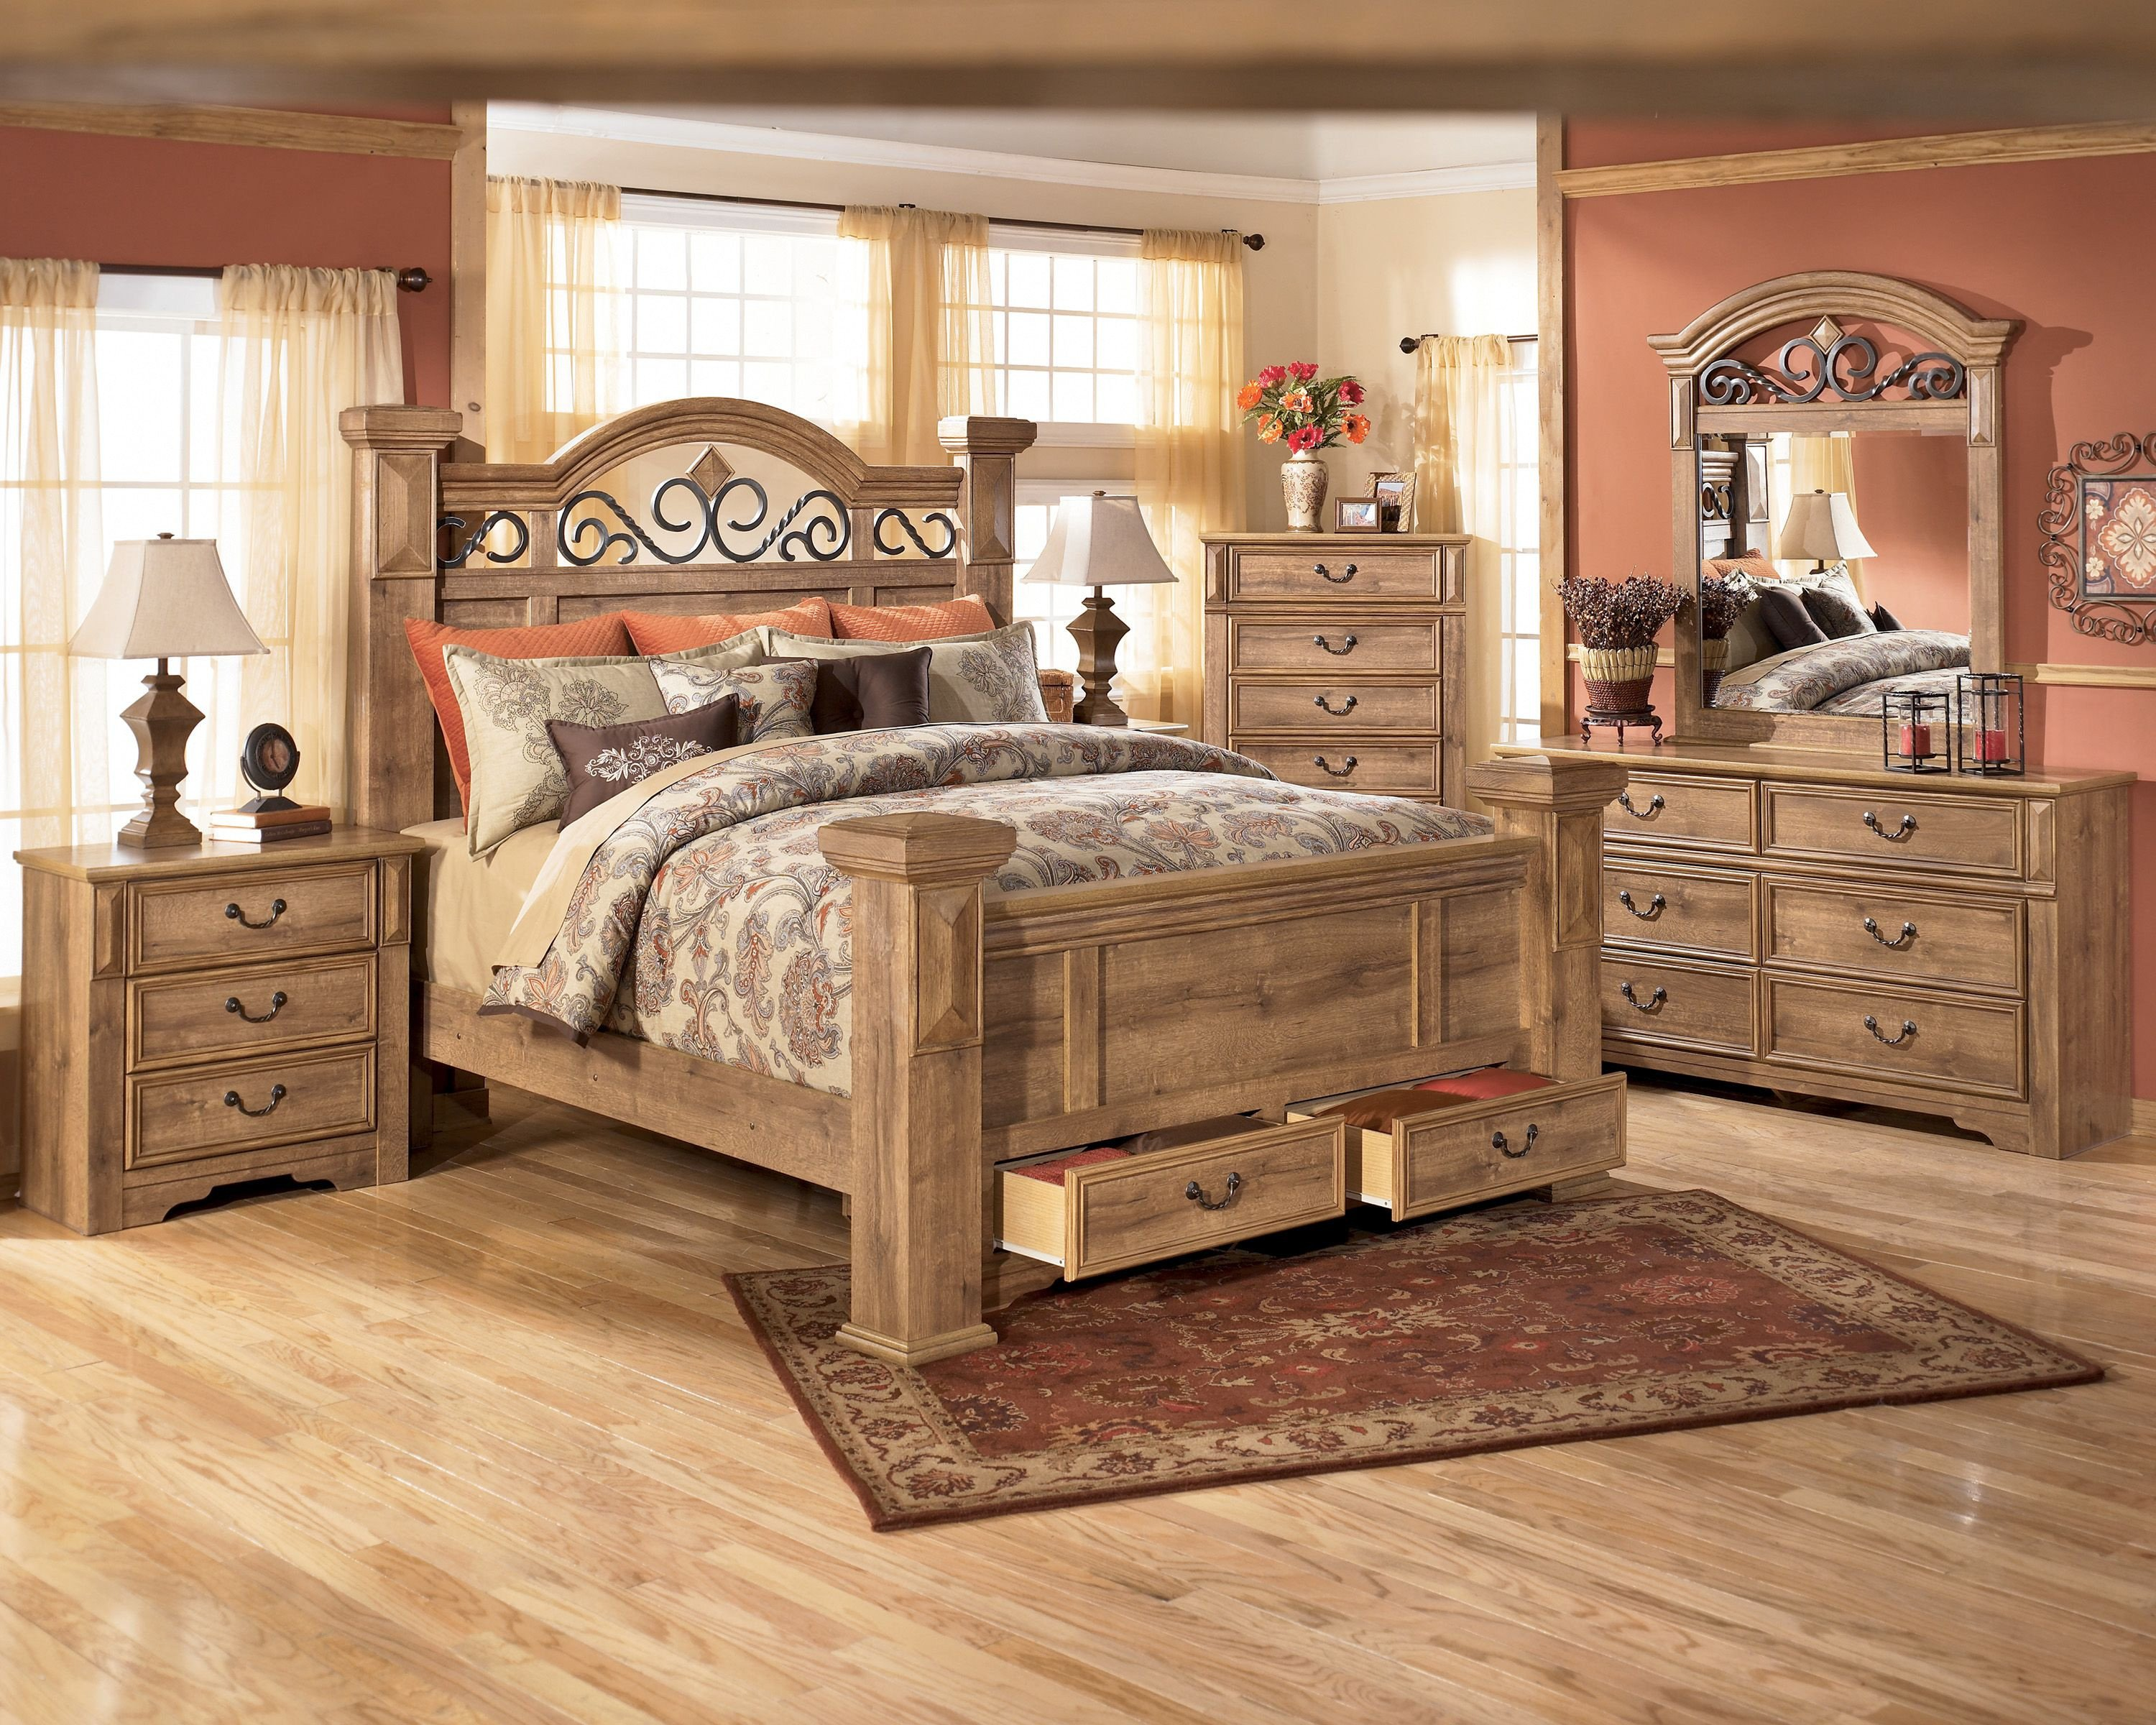 Ashley Queen Bedroom Set Fresh Awesome Awesome Full Size Bed Set 89 Home Decorating